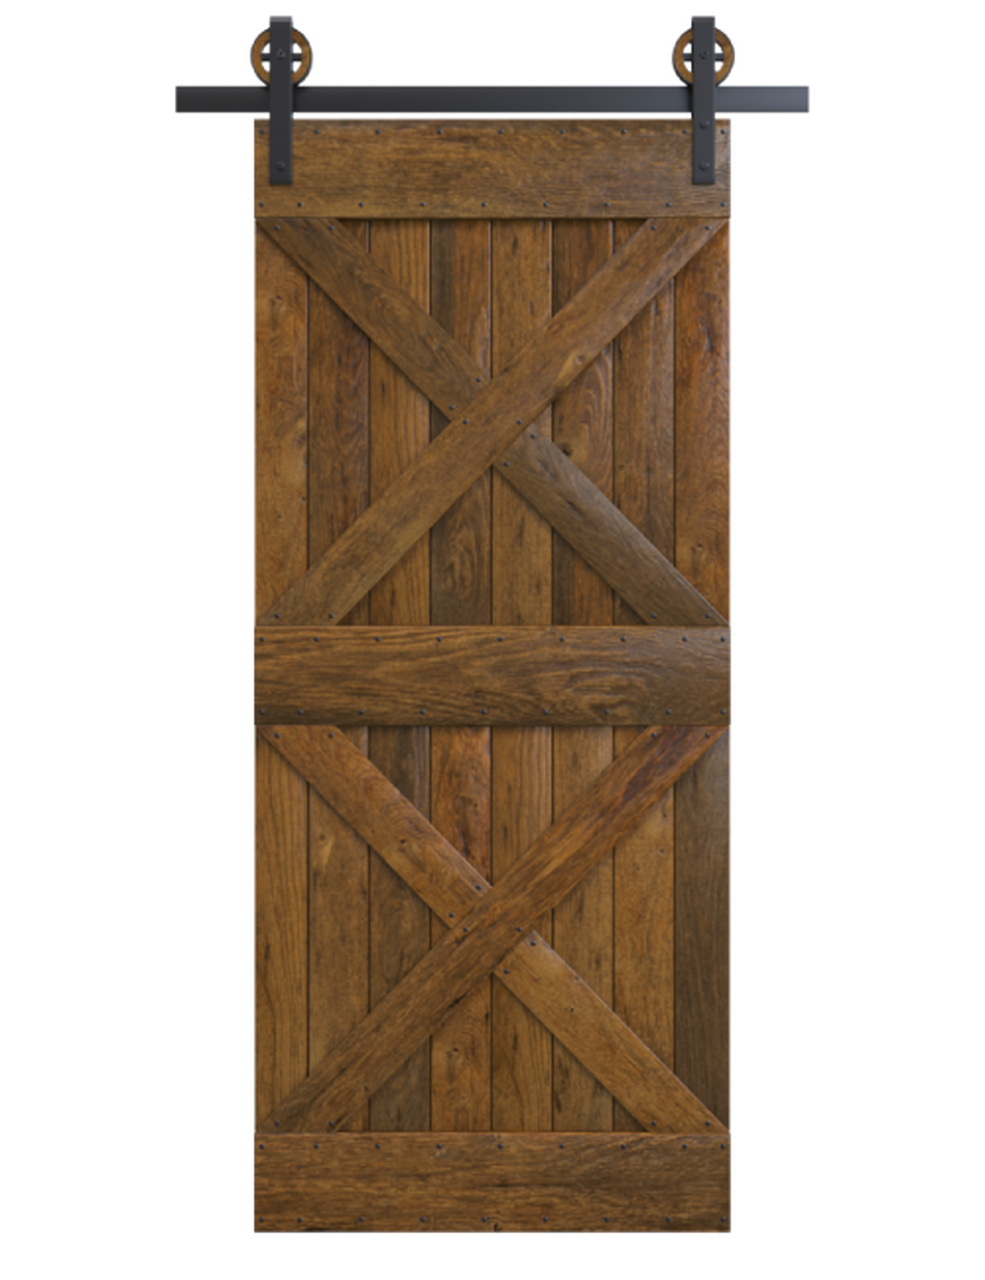 newport stained wood barn door with double x board and batten design